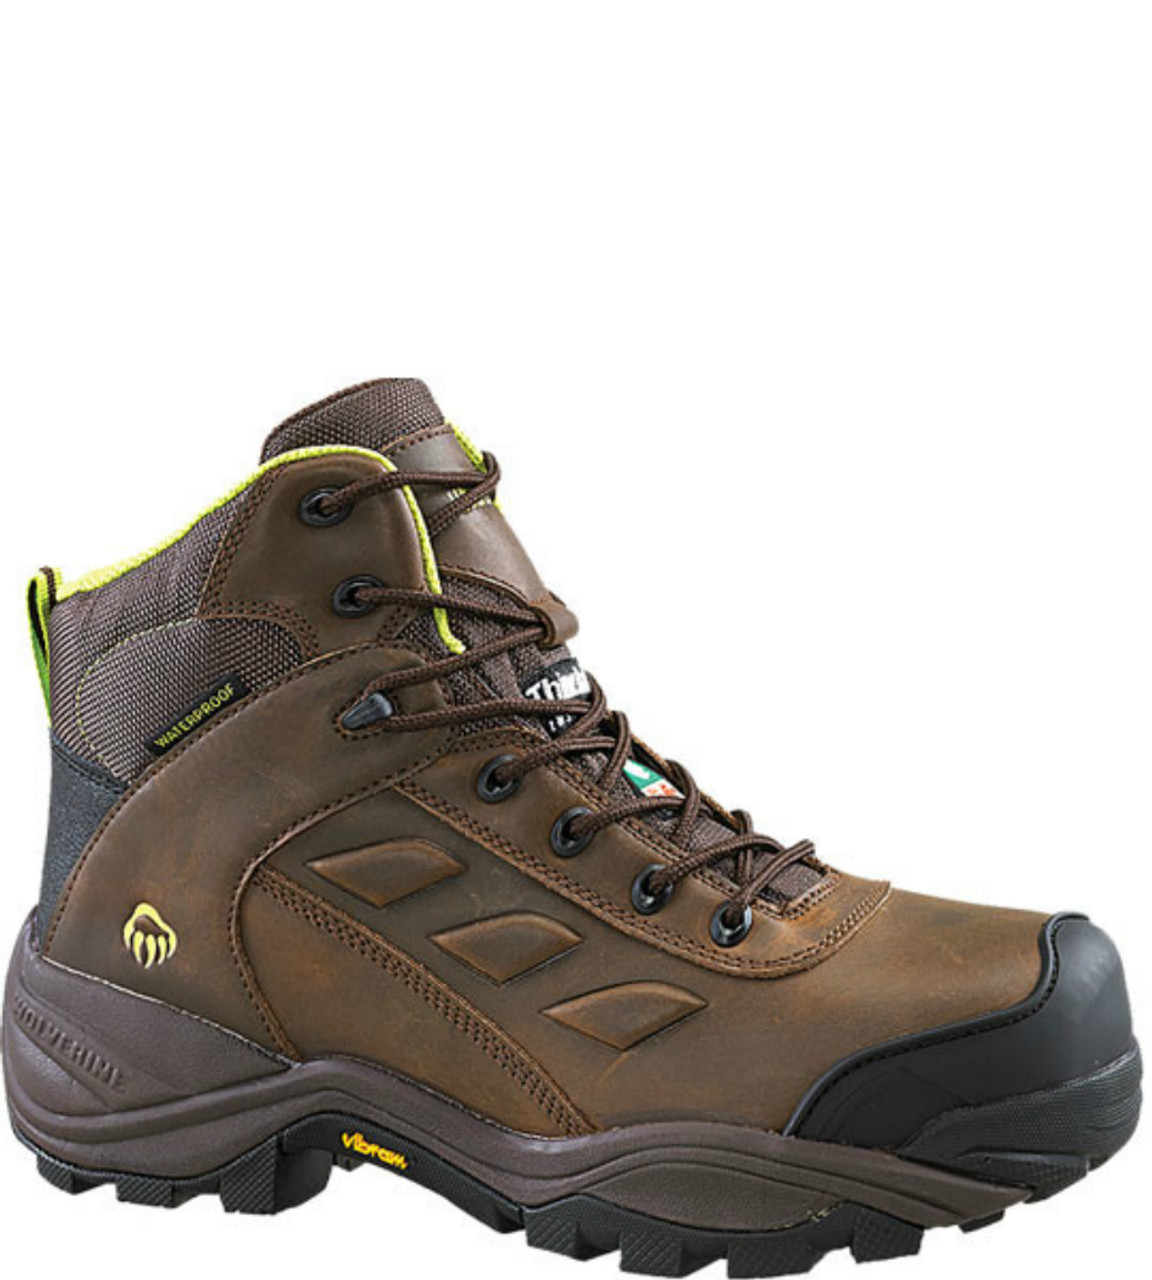 190cd02abee Wolverine W23308 Womens Growler 6″ Composite Toe Insulated Waterproof  Safety Boot